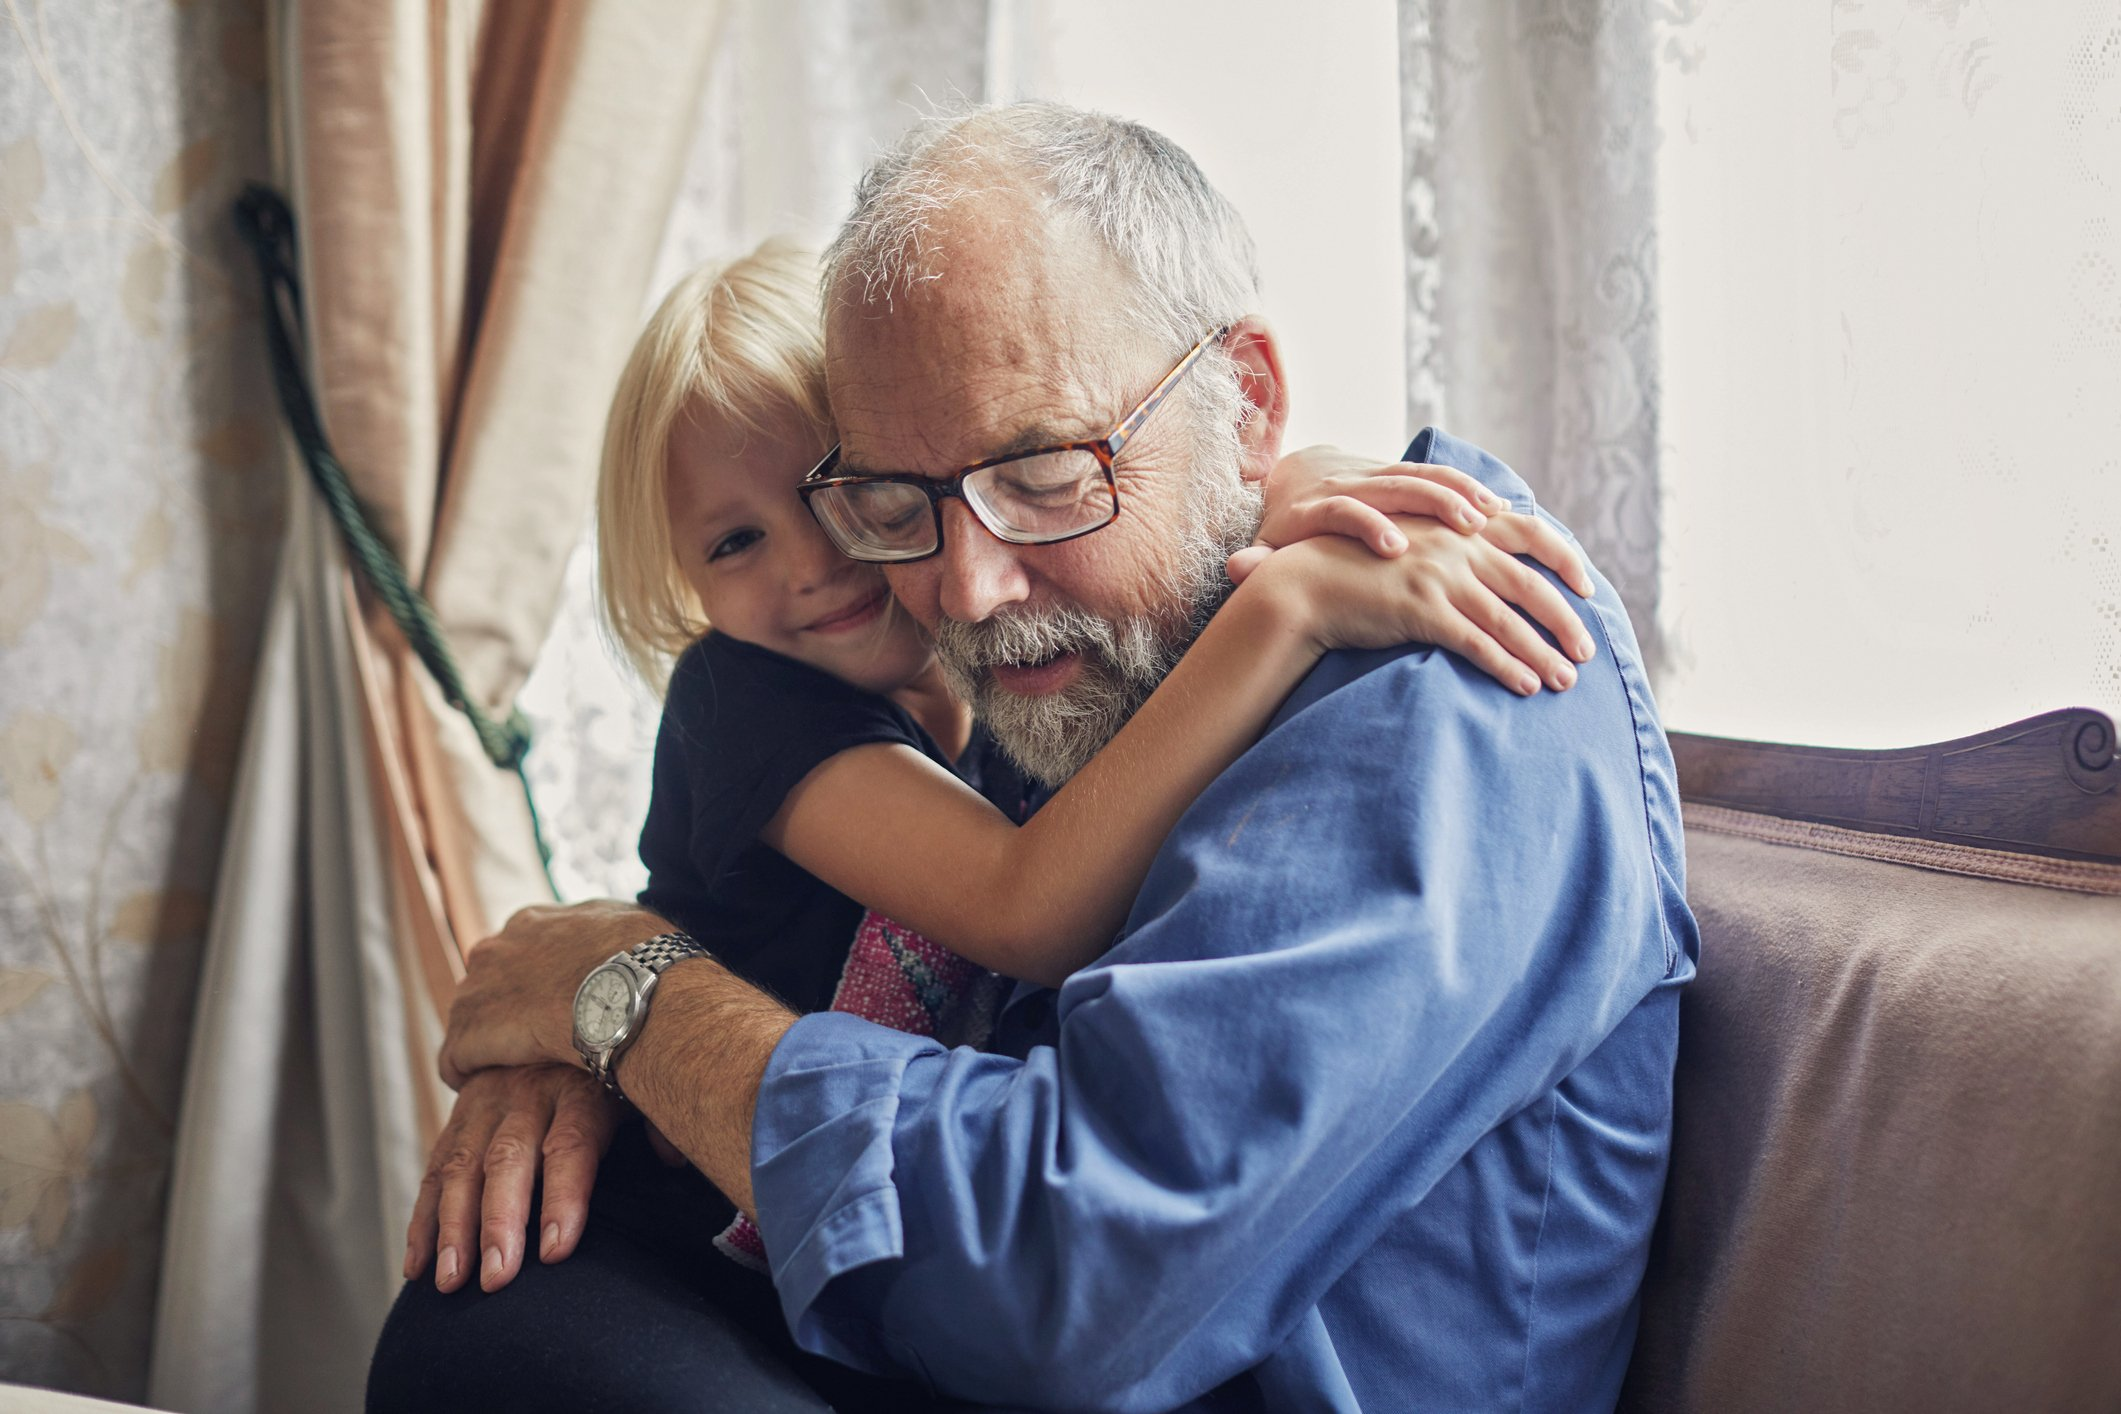 John was forgiven by Ruth and he got to meet his grandkid | Source: Pexels